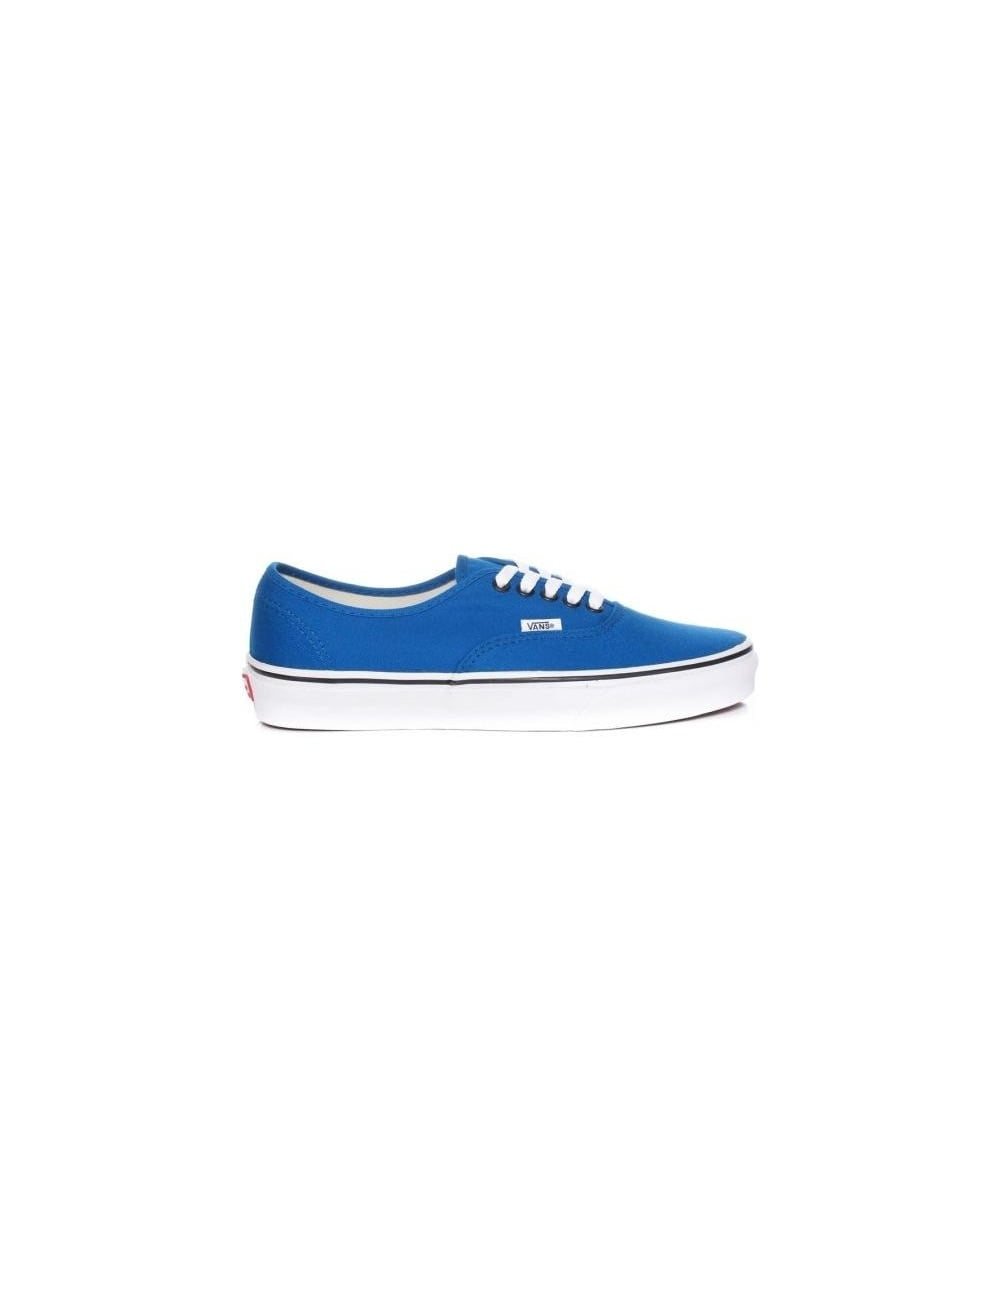 63684c3c37 Vans Classics Authentic - Snorkel Blue - Footwear from Fat Buddha ...